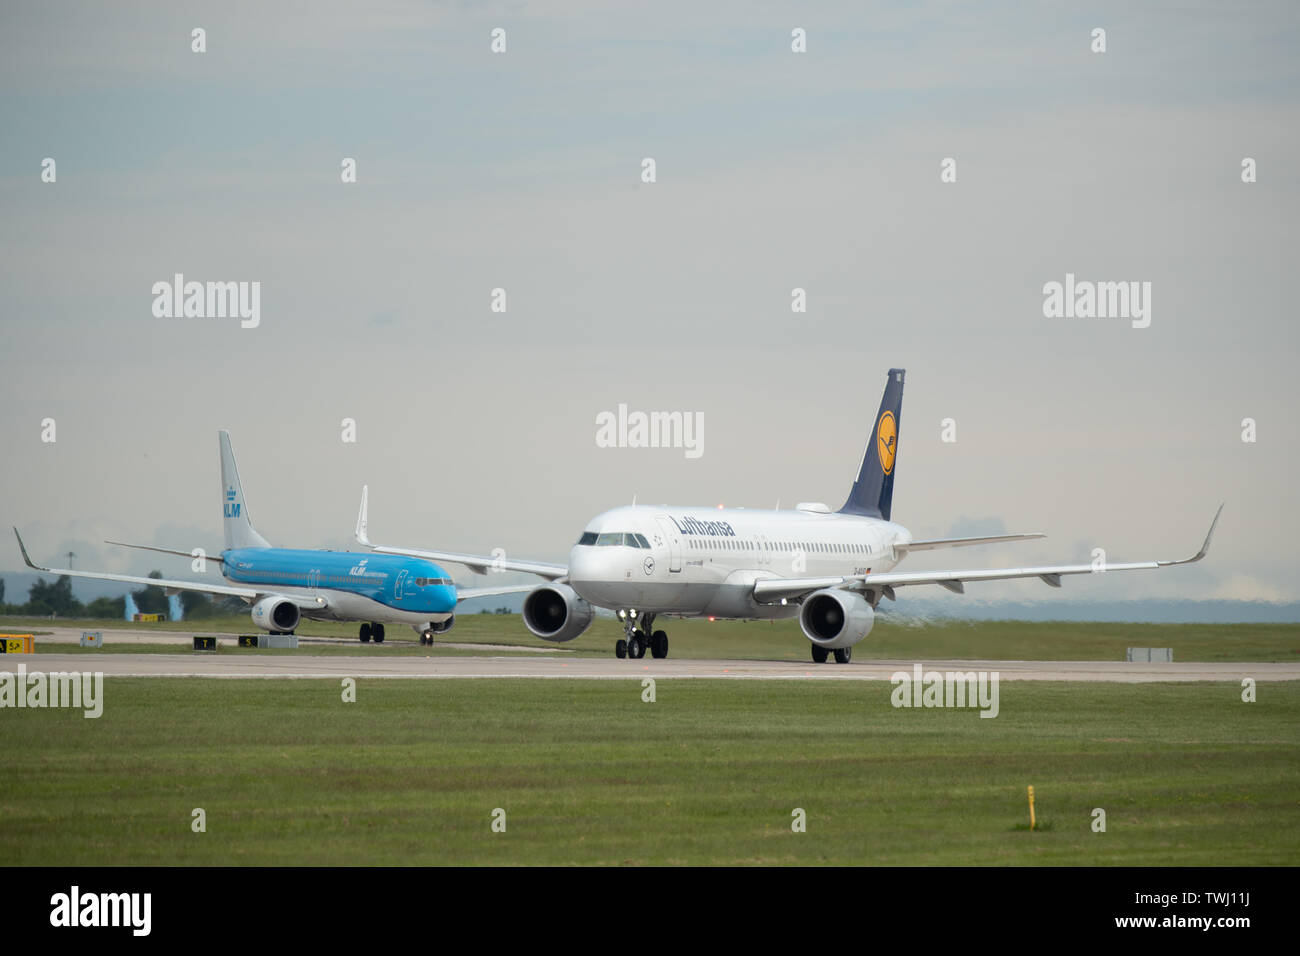 A Lufthansa, also known as Deutsche Lufthansa AG, Airbus A320 prepares for take off from Manchester International Airport in Wilmslow, United Kingdom Stock Photo